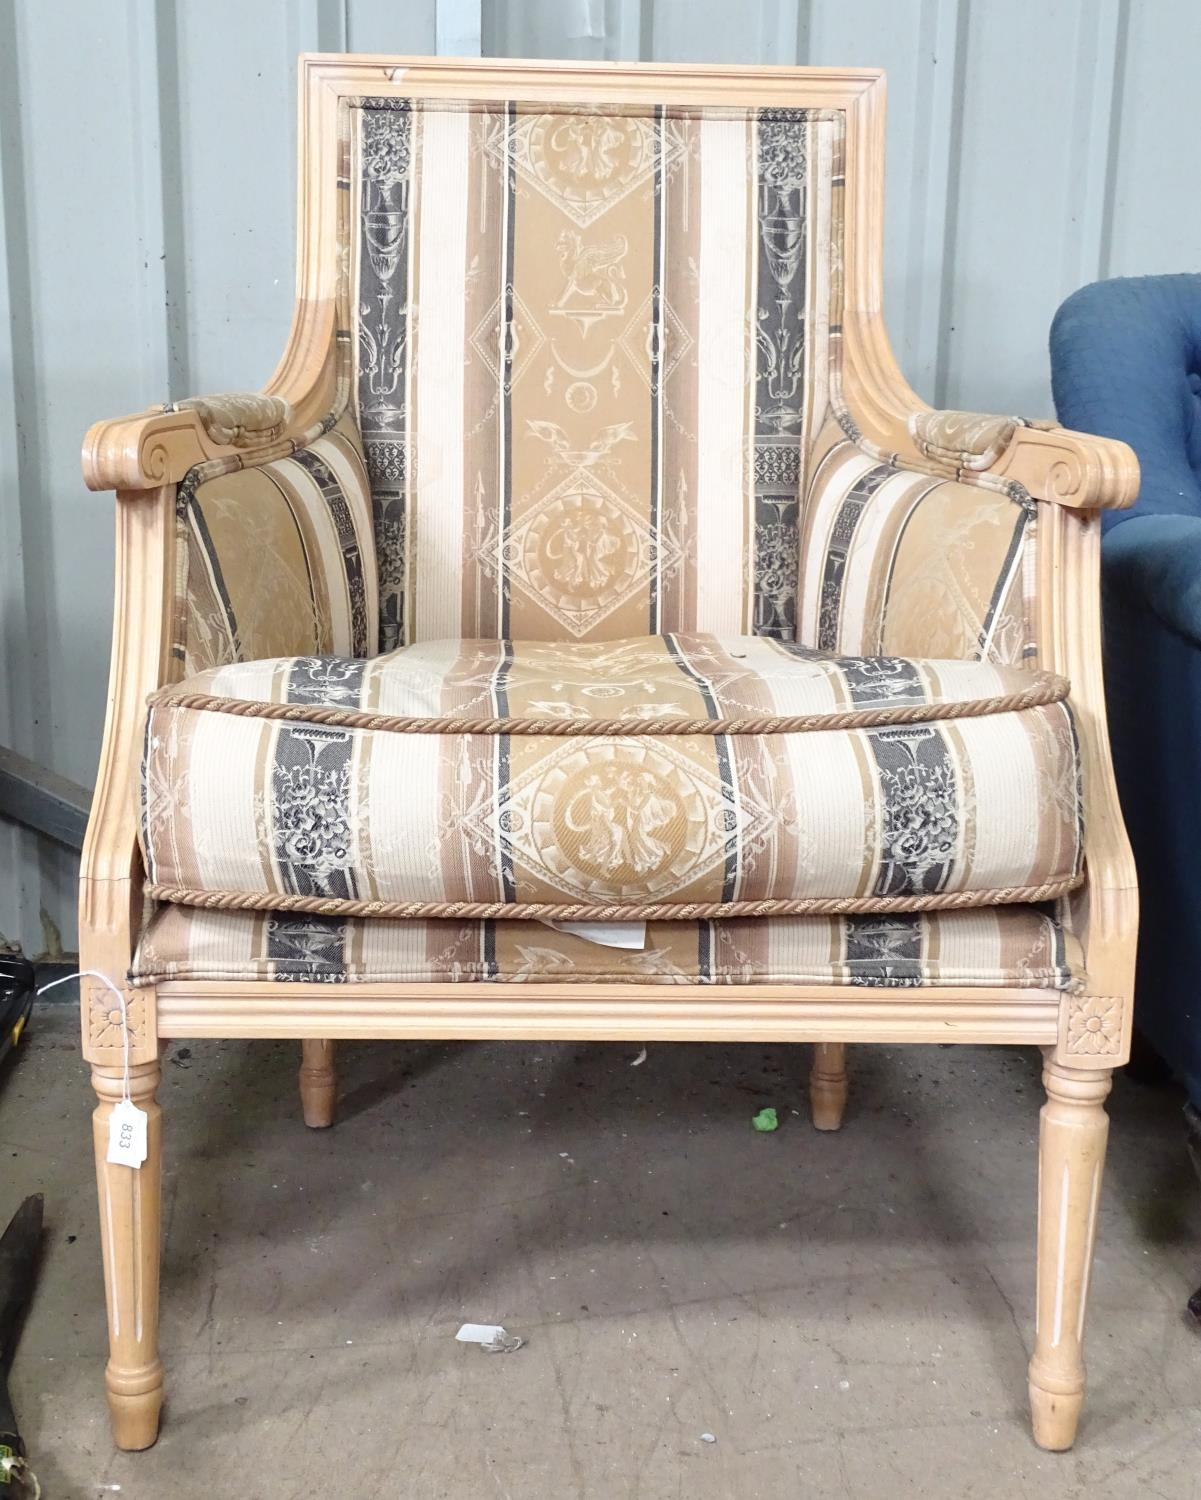 A late 20thC fauteuil style armchair Please Note - we do not make reference to the condition of lots - Image 3 of 3